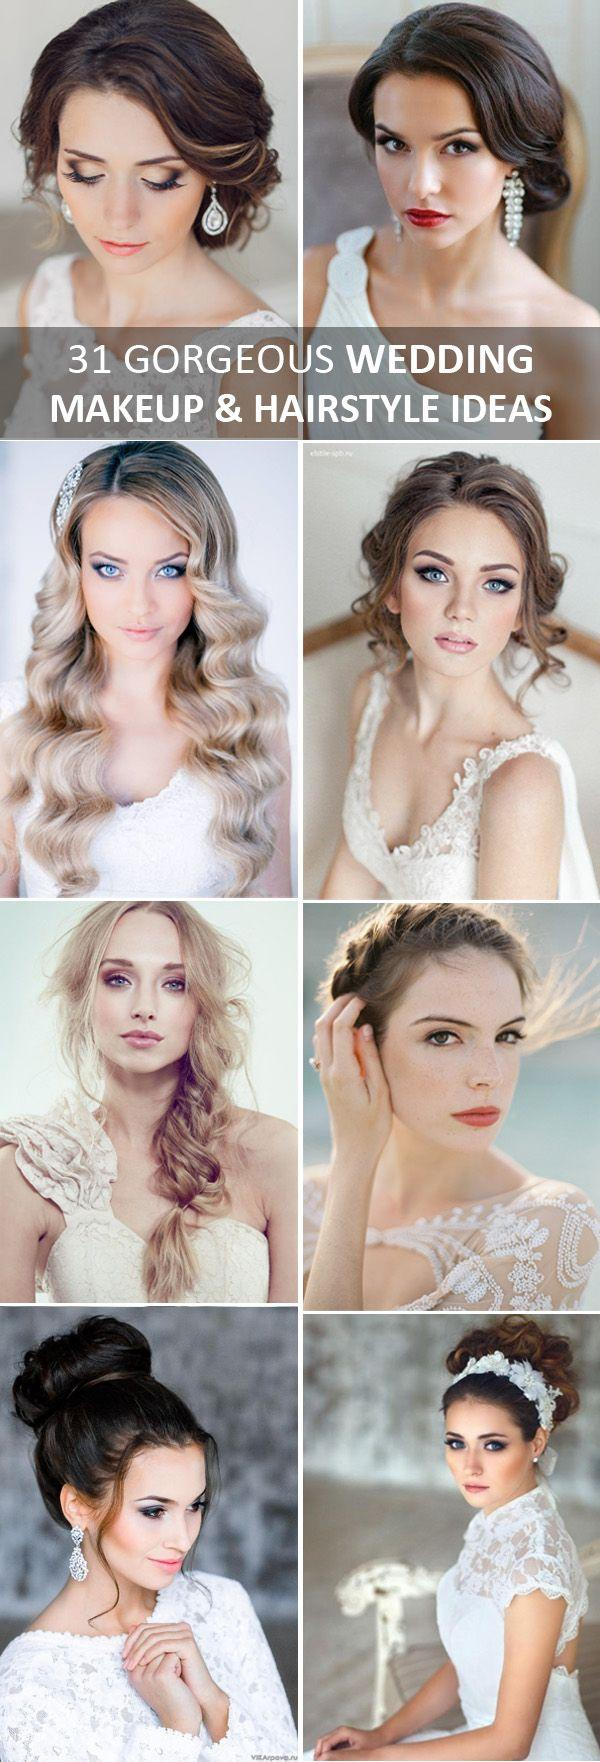 Wedding - 31 Gorgeous Wedding Makeup & Hairstyle Ideas For Every Bride